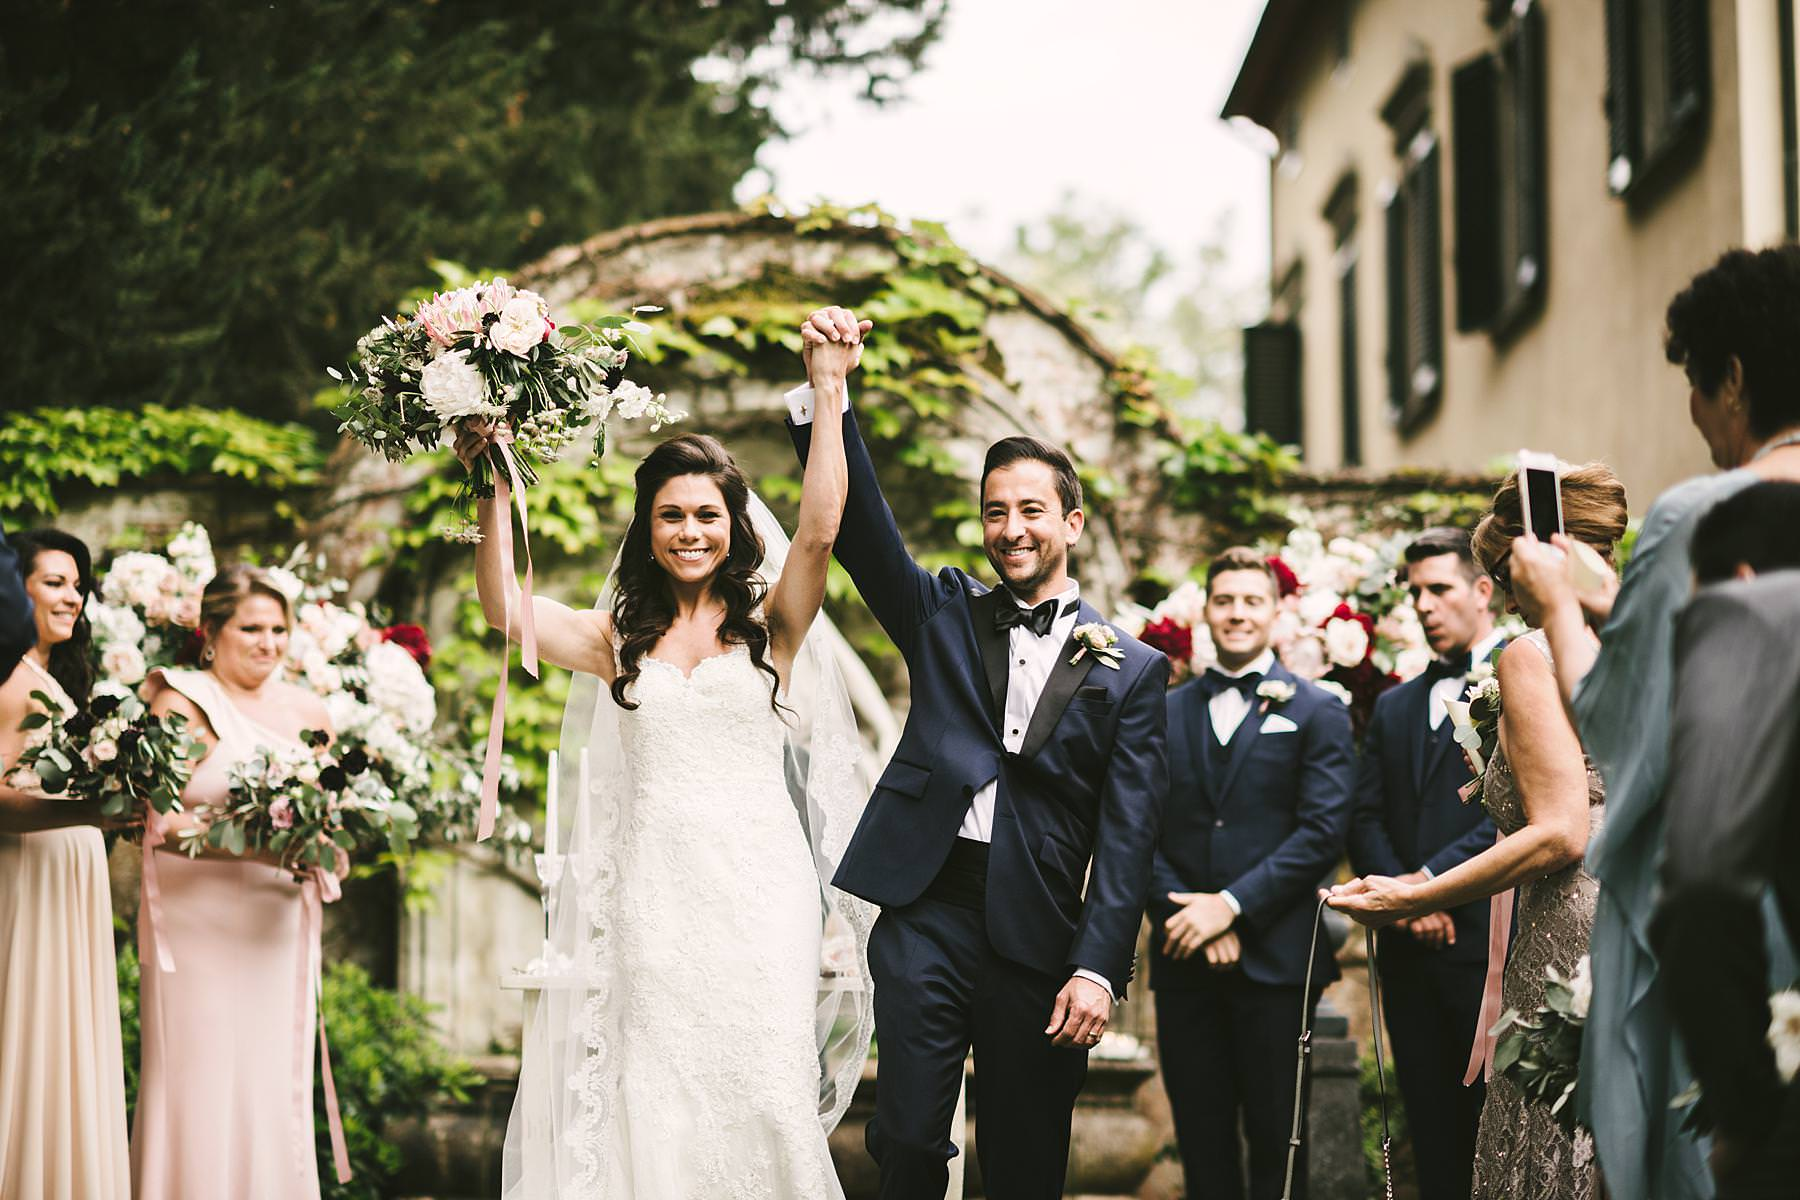 Bride and groom just married in Tuscany lovely venue of Villa La Selva in the countryside of Tuscany. La Dolce Vita Style destination wedding planned by the Italian Wedding Designer planning agency